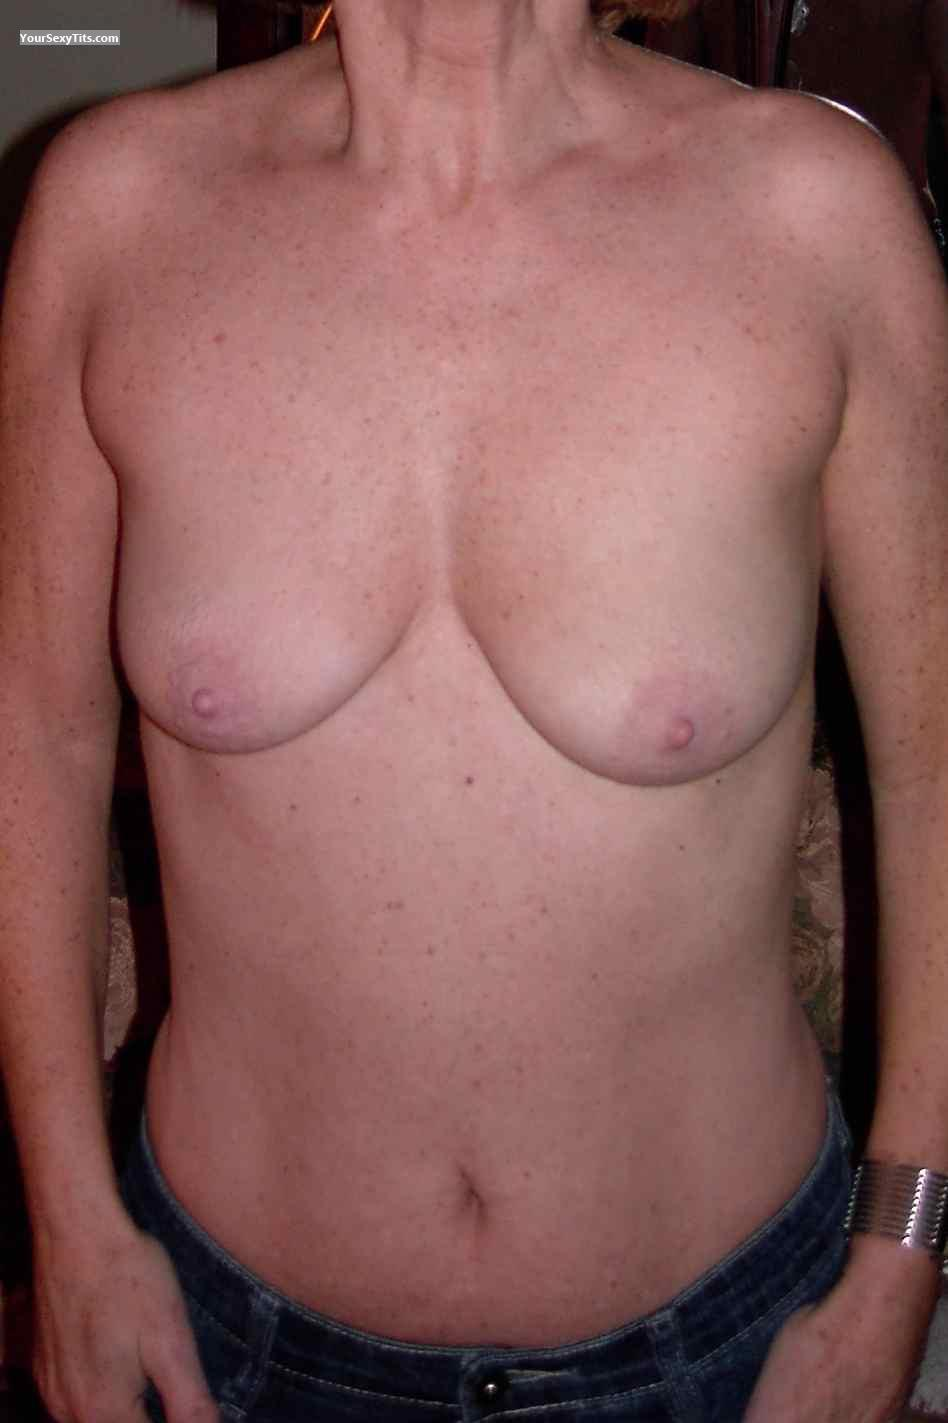 Tit Flash: Small Tits - Pale Nipples from Canada